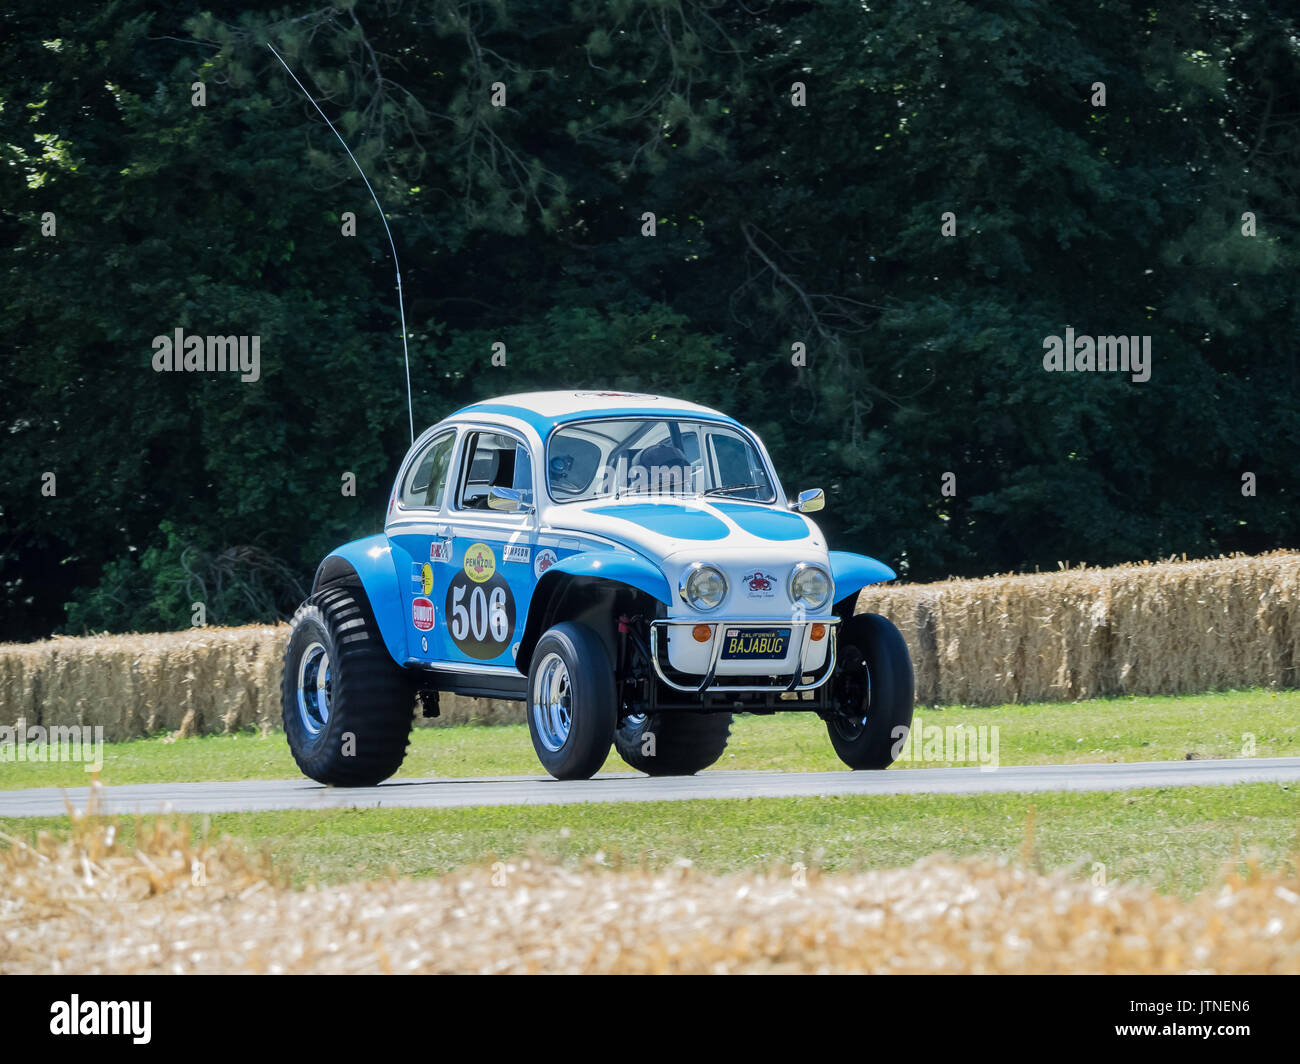 Baja Bug VW Beetle ( Tamiya Sand Scorcher model toy full size repro) at Goodwood festival of speed 2017 - Stock Image